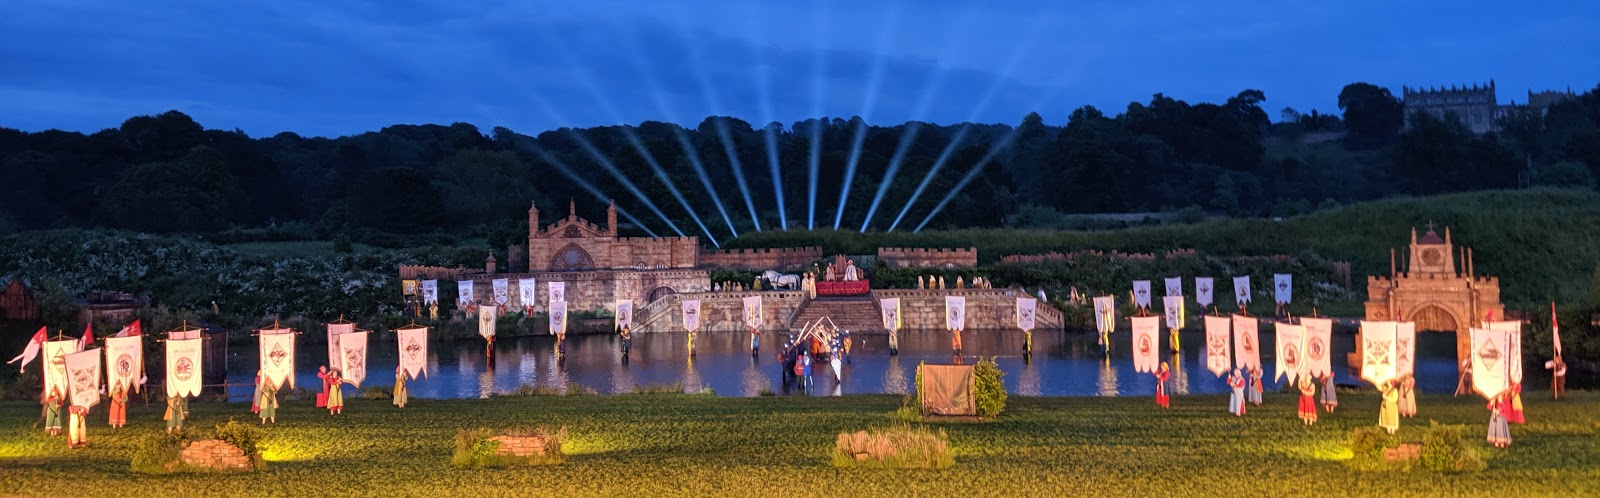 The Best Days Out in County Durham for Kids  - Kynren